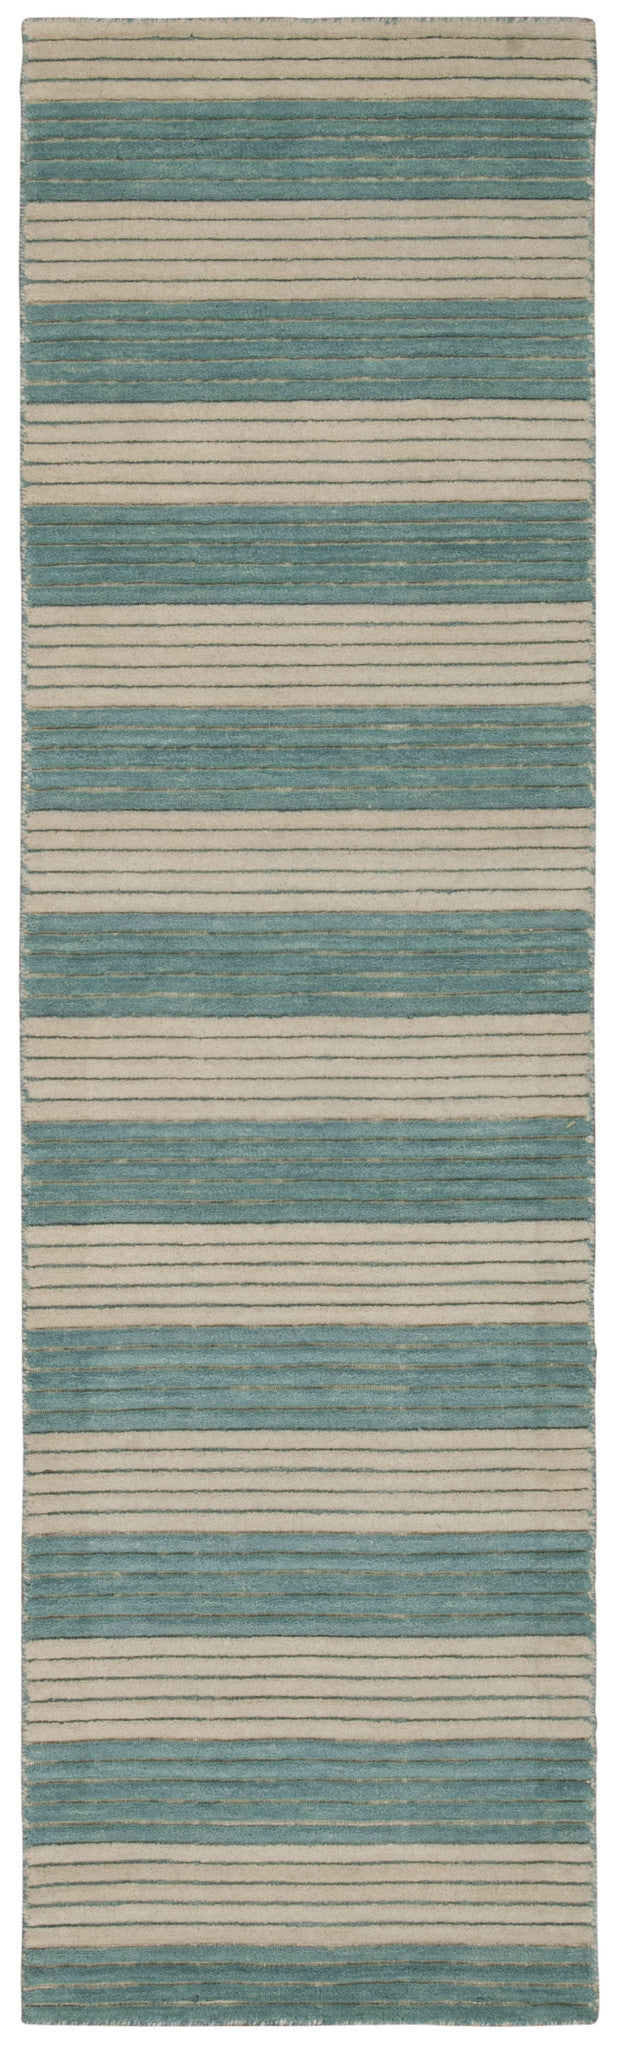 Barclay Butera Ripple Seascape Area Rug By Nourison RIP02 SEASC (Runner) | BOGO USA